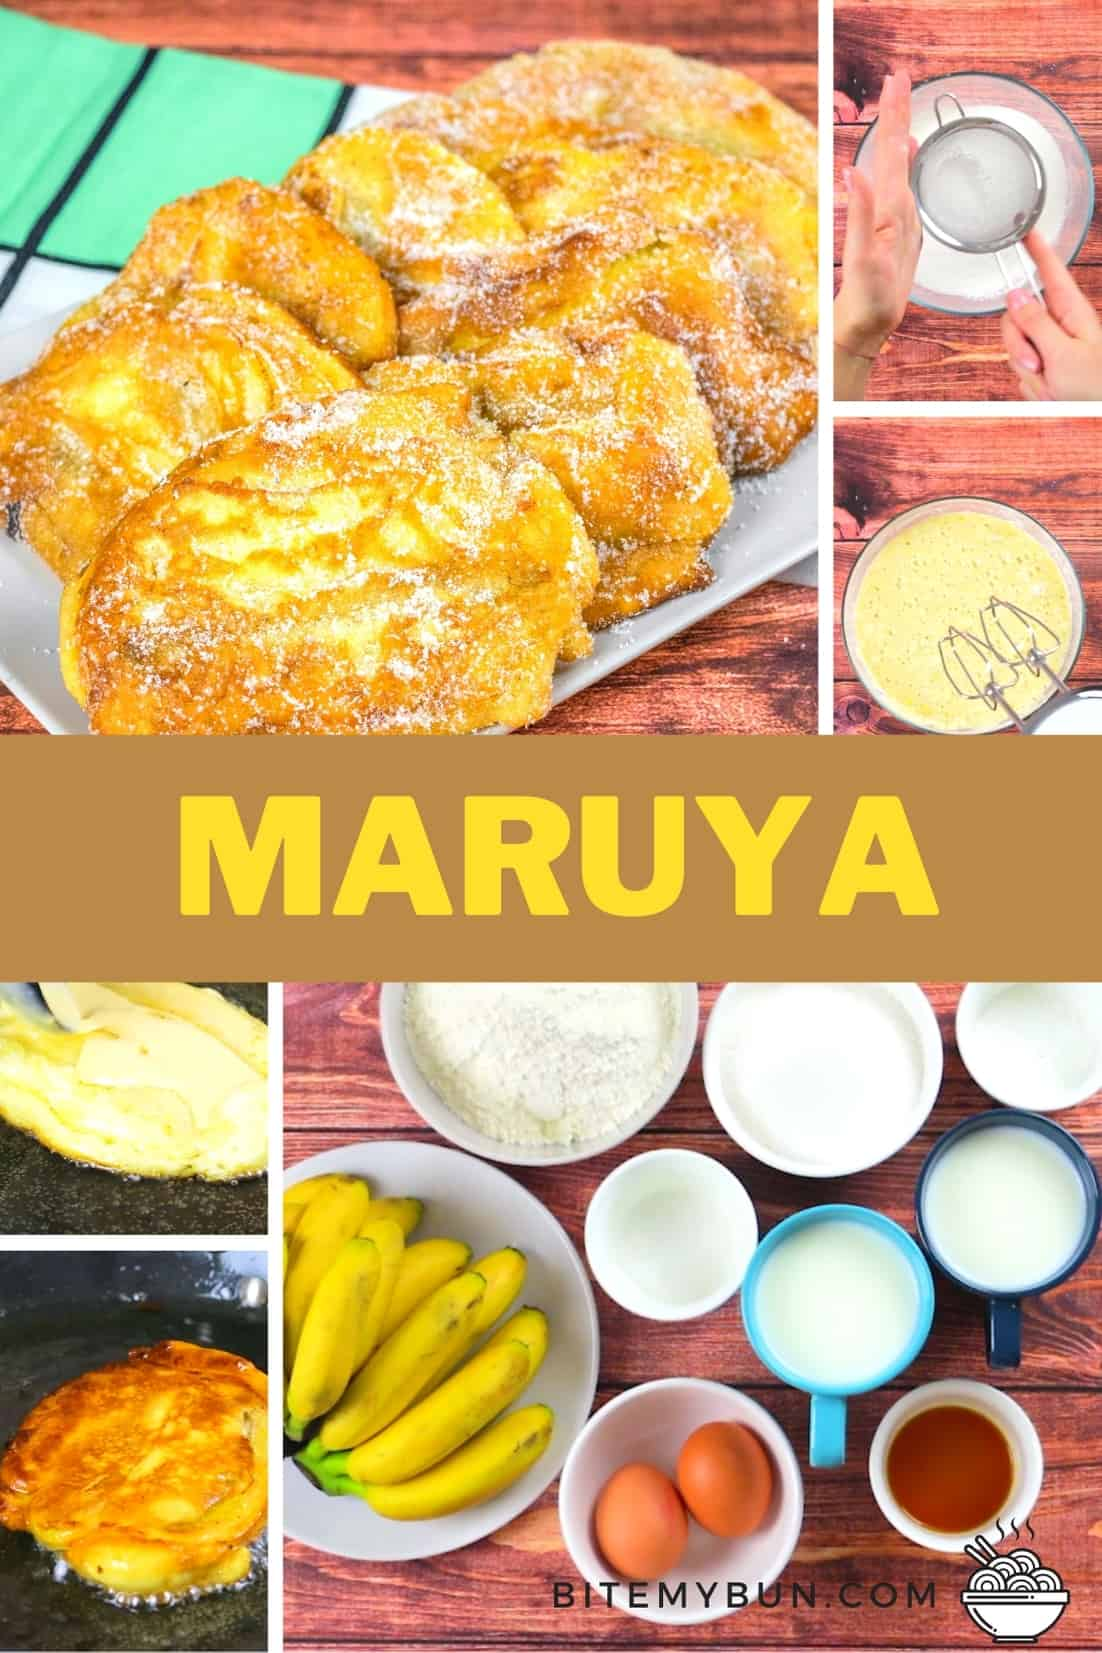 How to make delicious maruya banana fritters